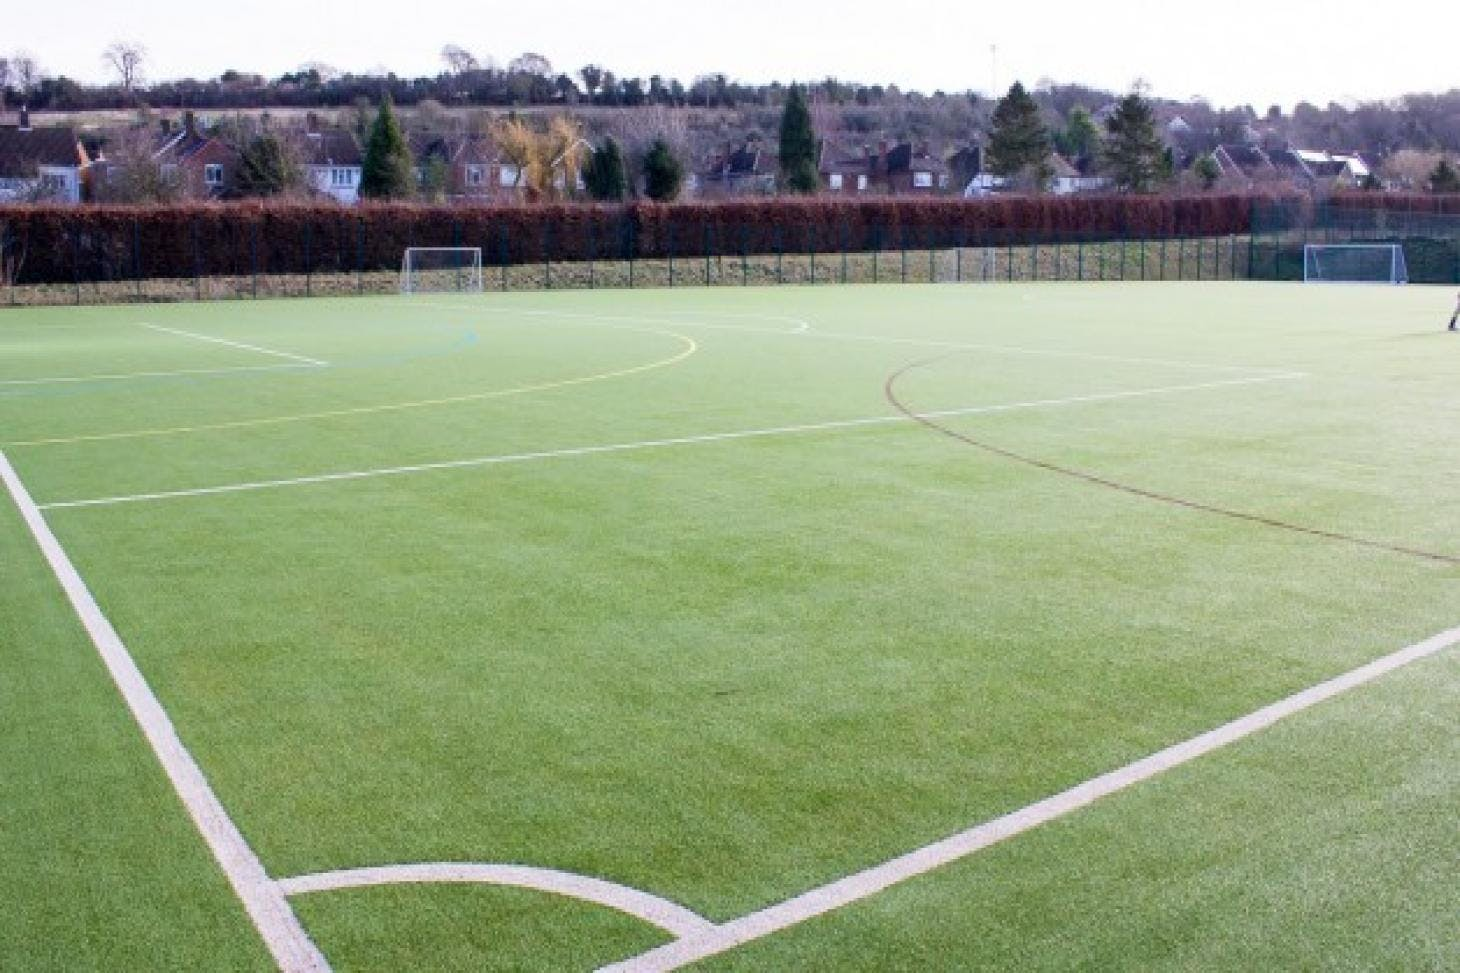 Luton Sixth Form College 11 a side | Astroturf football pitch